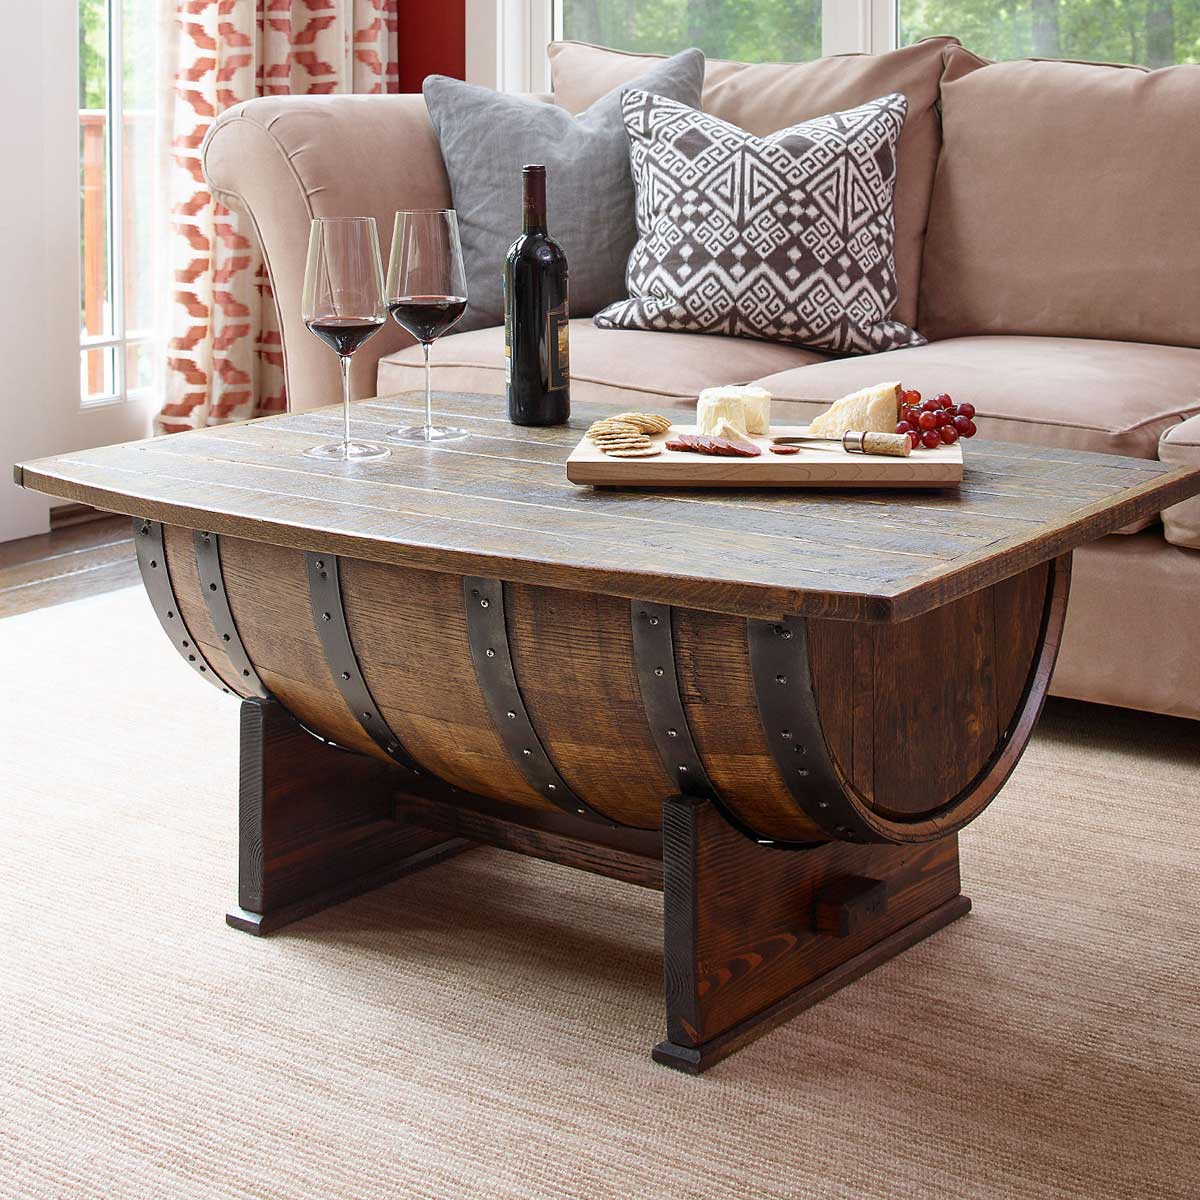 super cool homemade coffee table ideas unusual tables whiskeytable diy end whiskey barrel wood pallet chair instructions small occasional with drawer cocktail fire pit gold